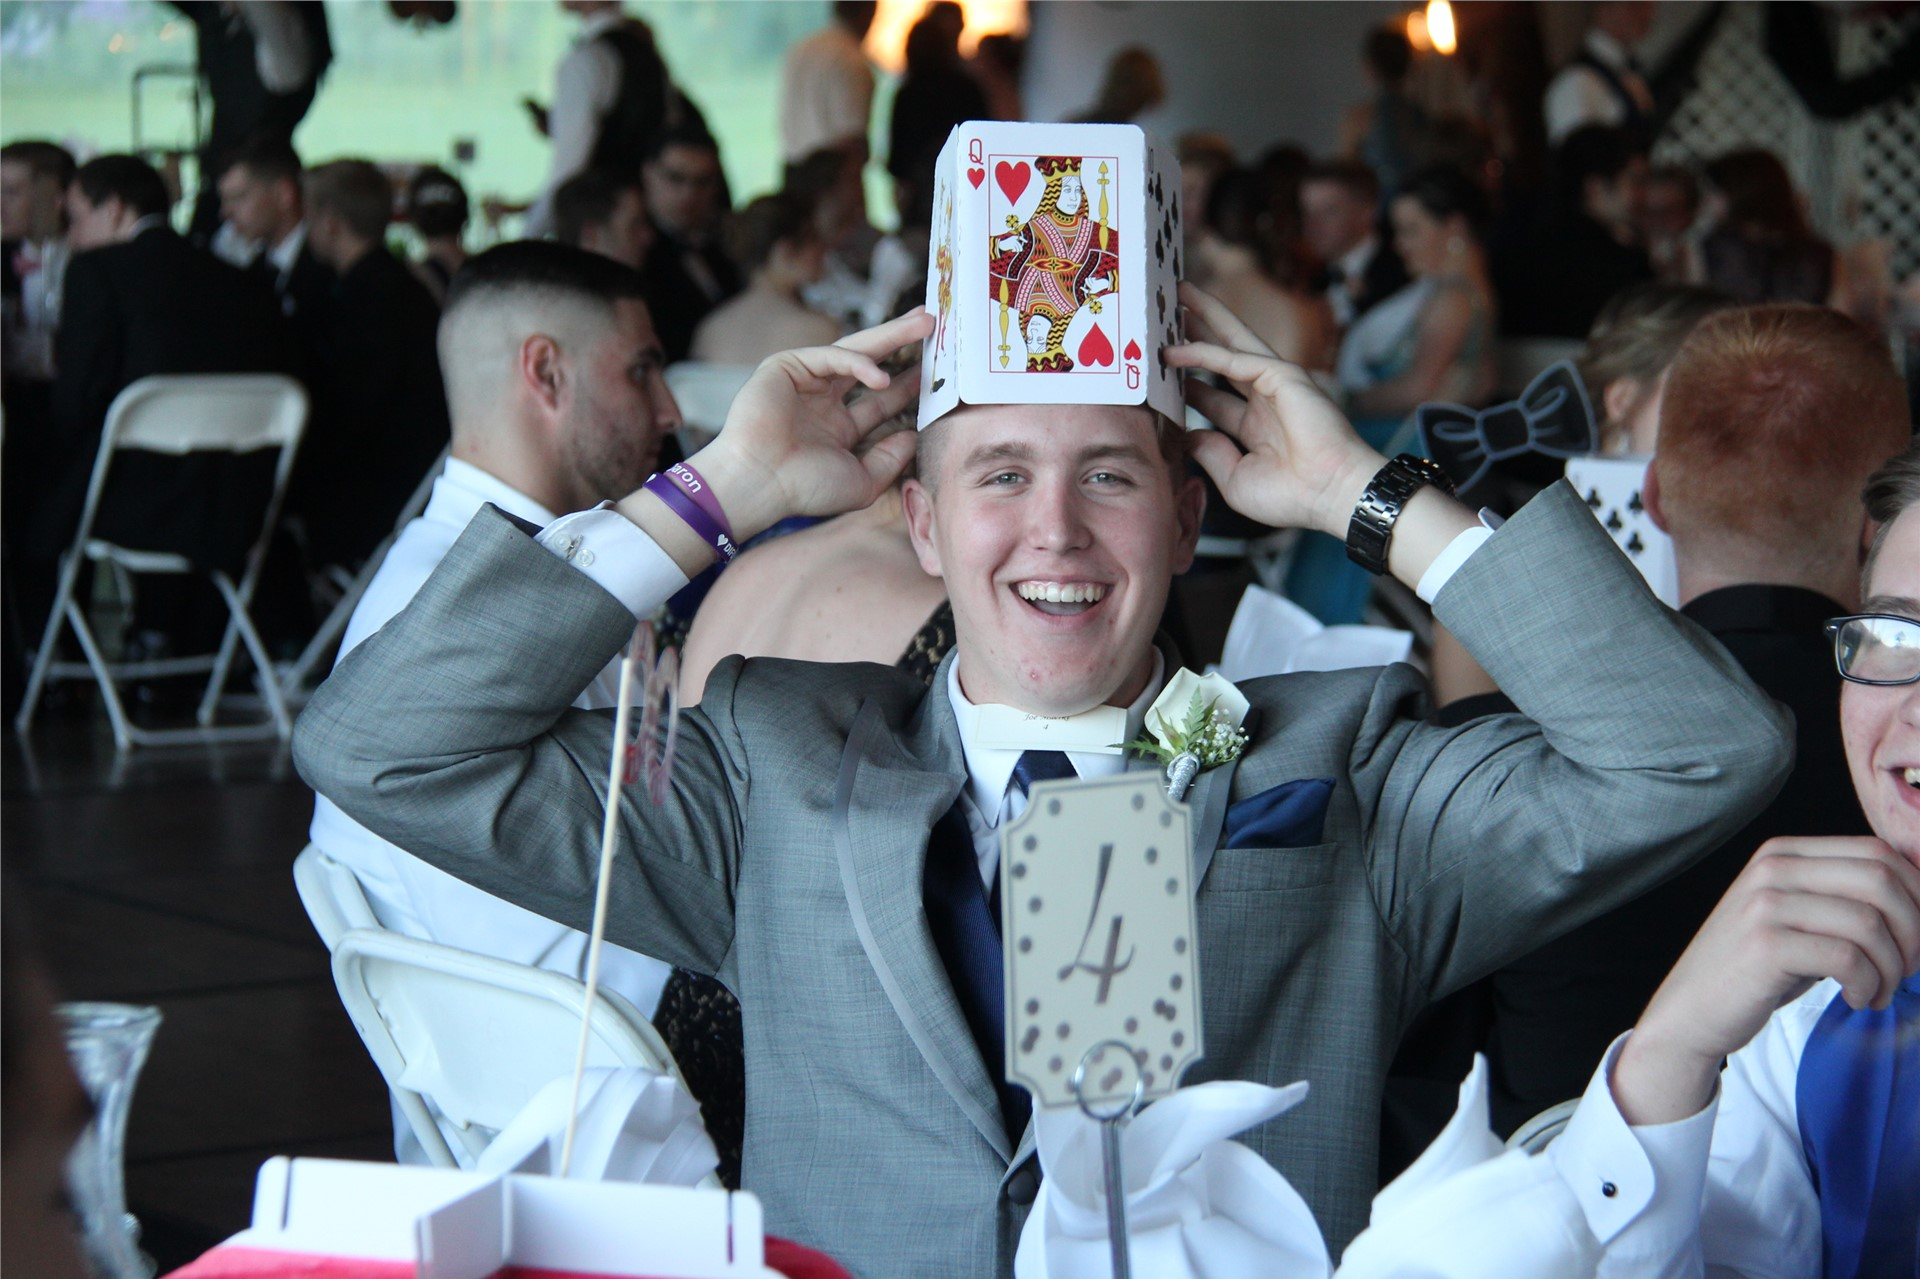 student laughing wears a hat made of cards